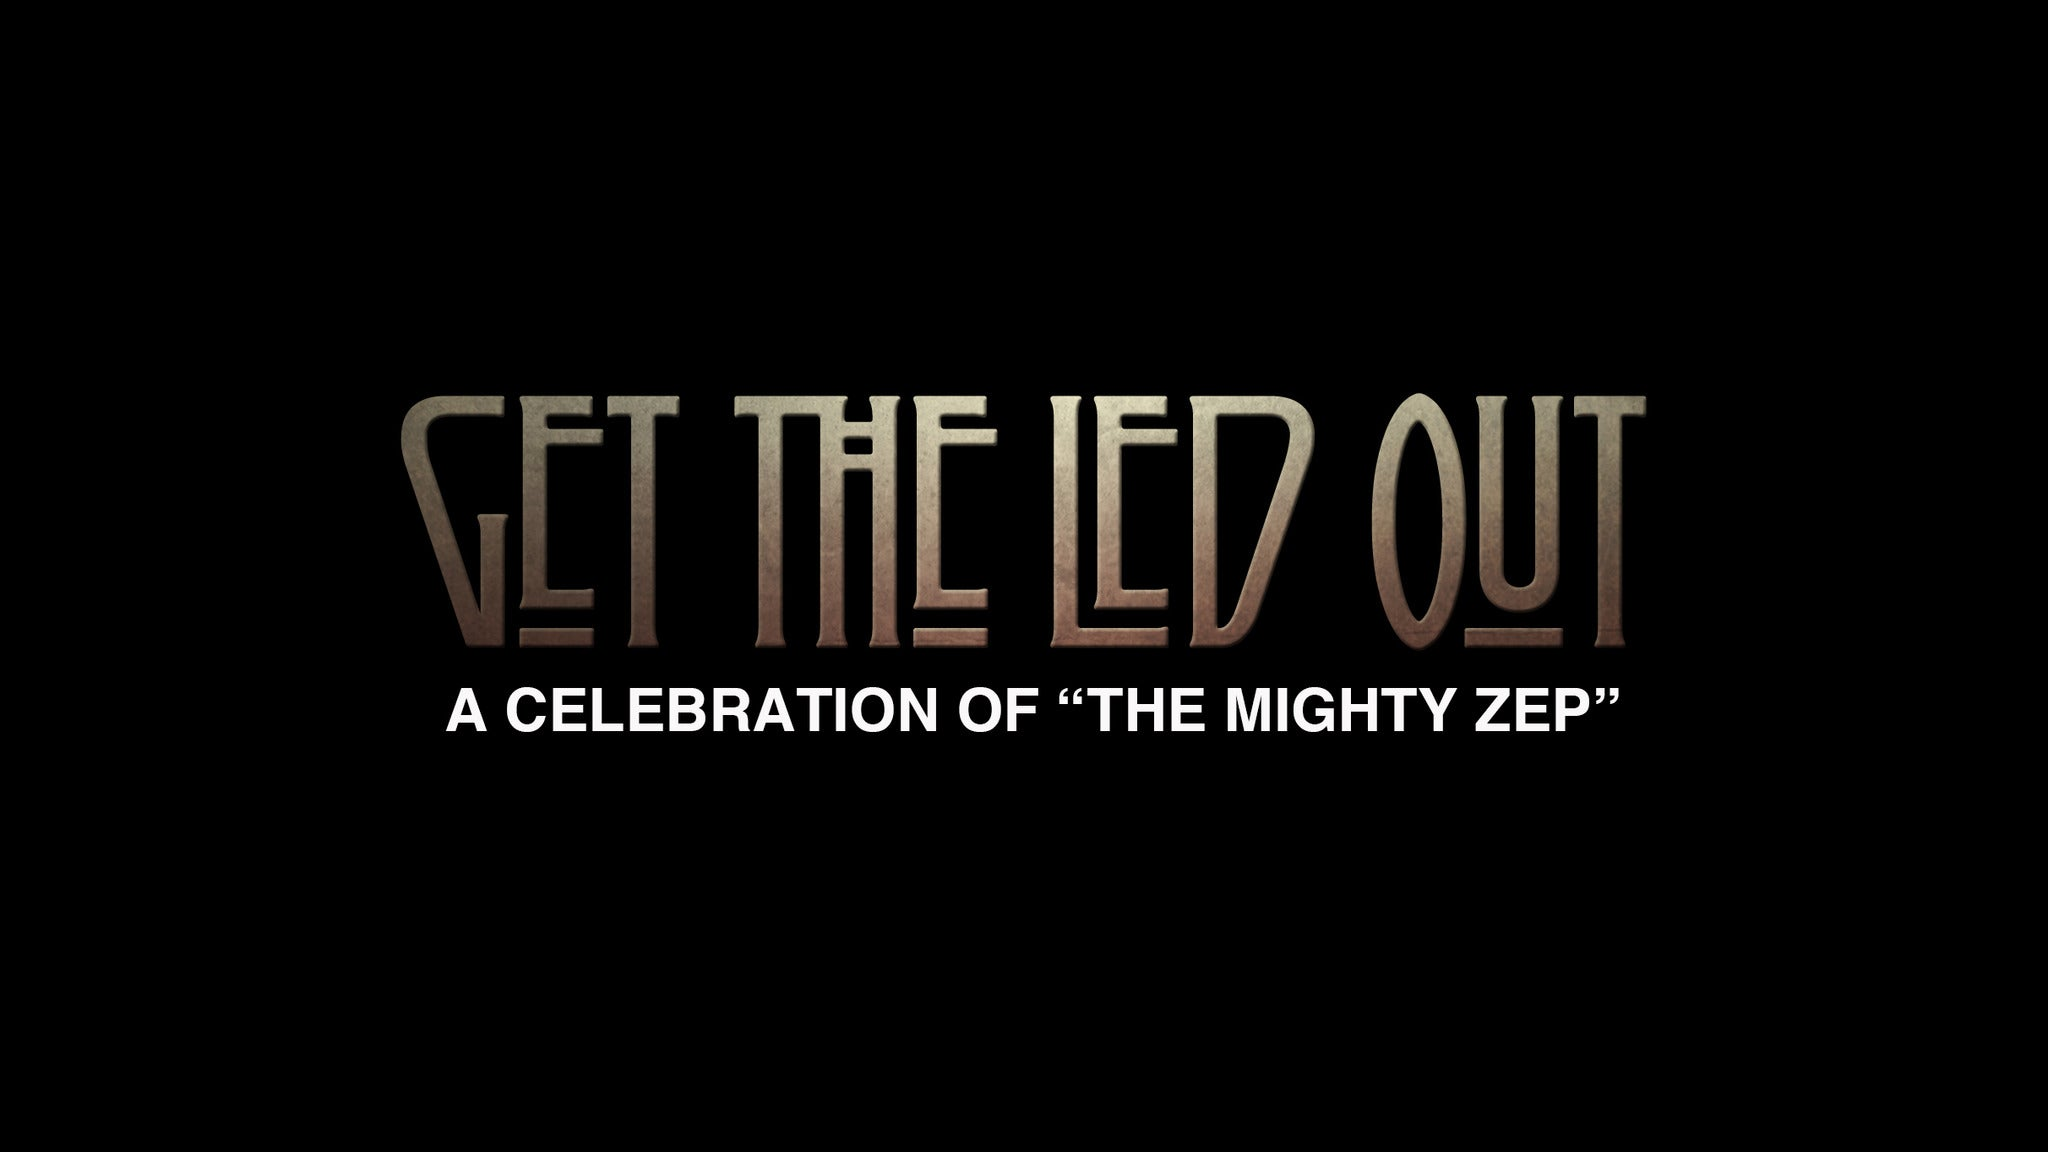 Get the Led Out at Penn's Peak